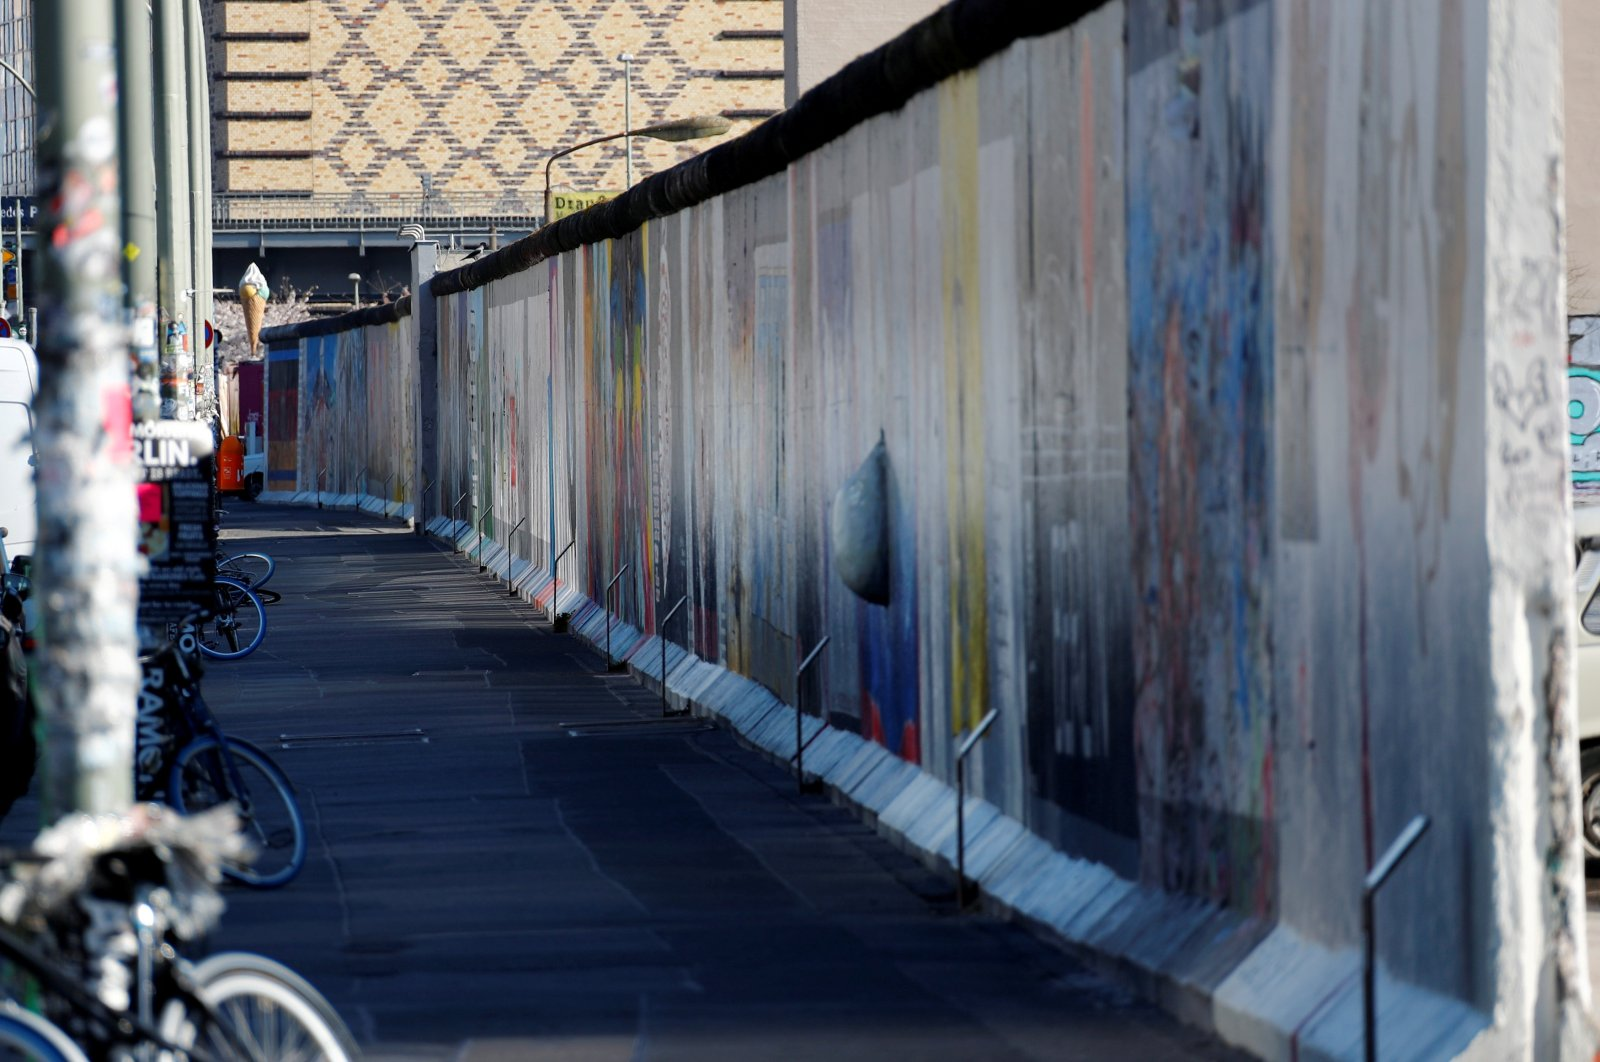 The empty East Side Gallery, the largest remaining part of the former Berlin Wall, is pictured during the coronavirus disease (COVID-19) outbreak in Berlin, Germany, March 25, 2020.  (Reuters Photo)